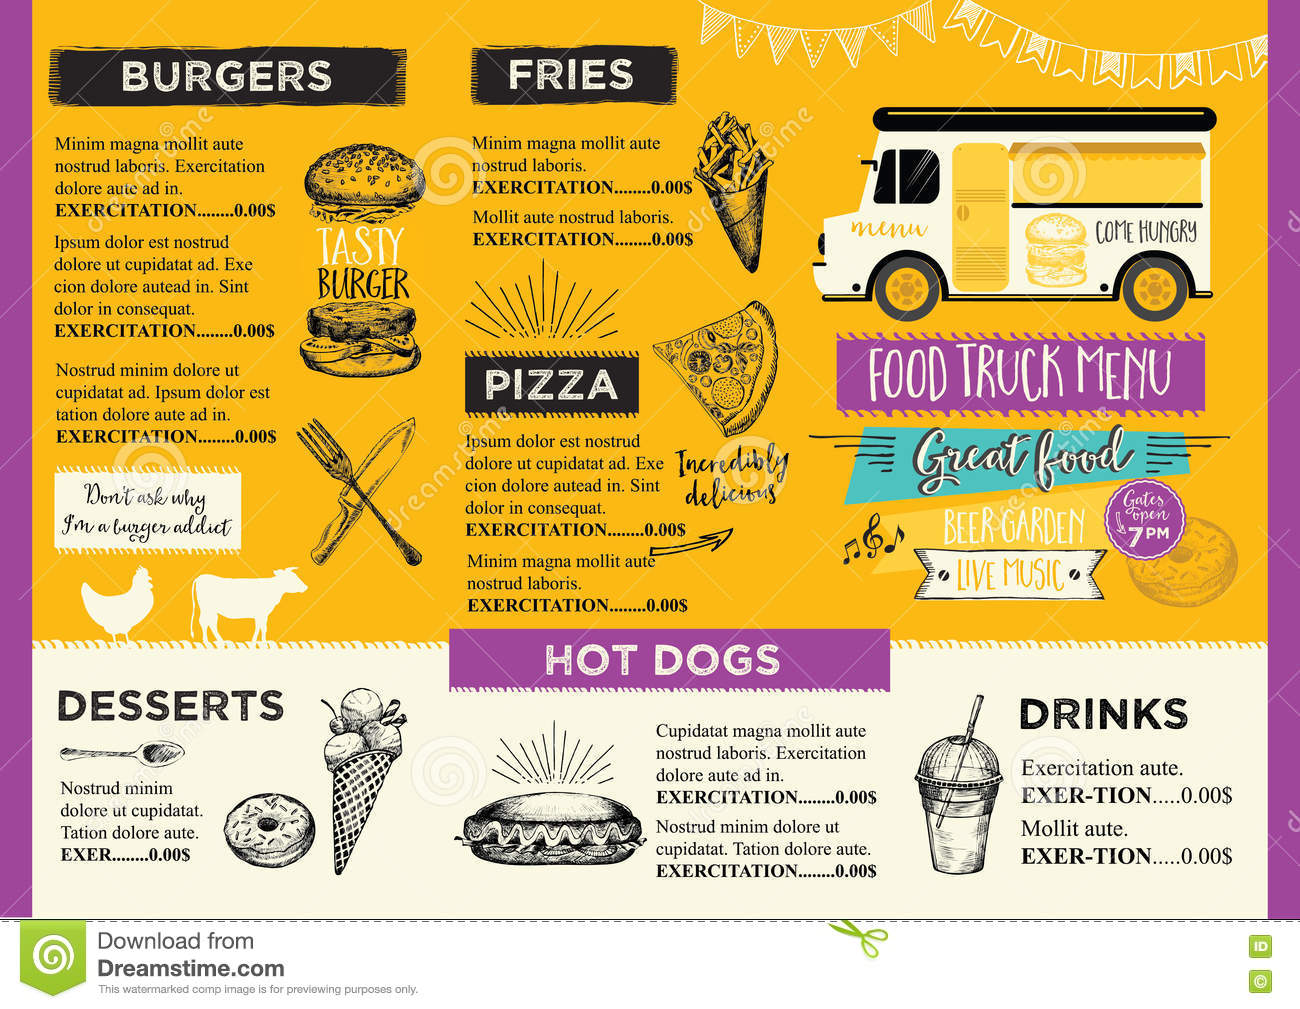 Food truck party invitation food menu template design for Kitchen 88 food truck utah menu